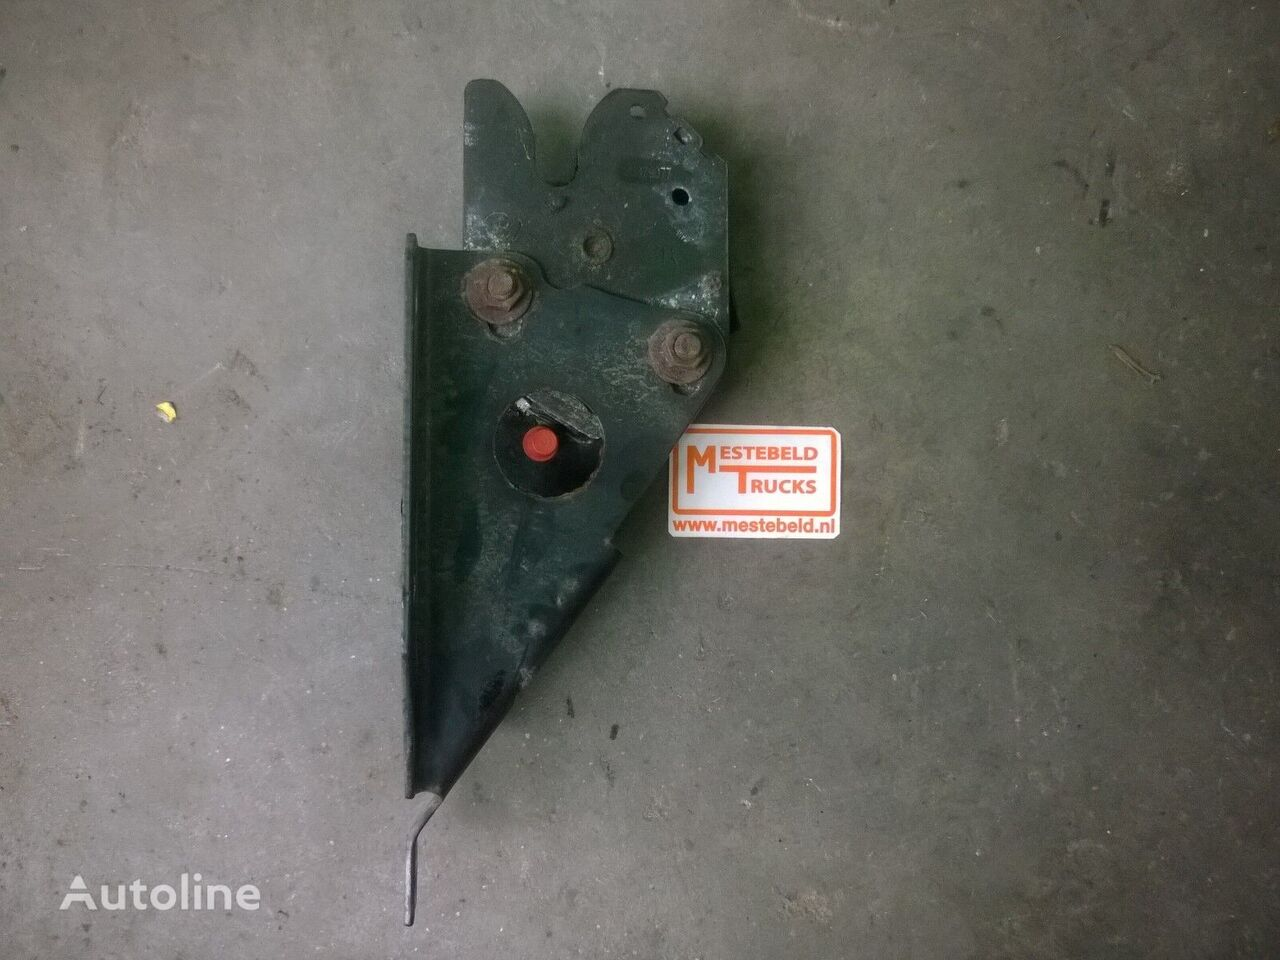 Cabineslot spare parts for RENAULT Cabineslot L/R truck